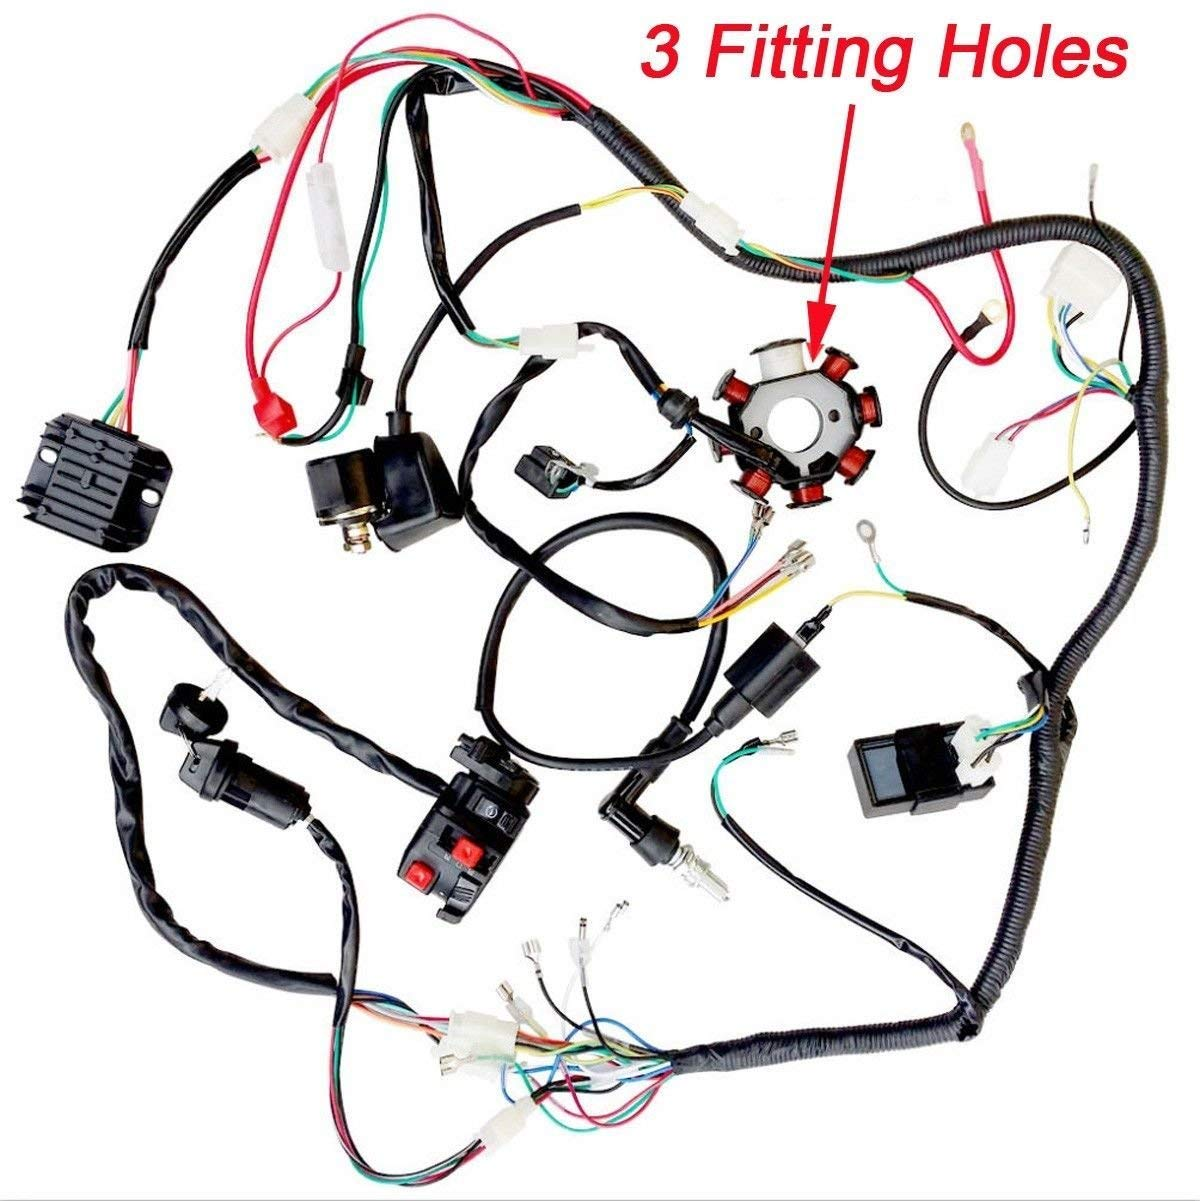 amazon jikan annpee plete electrics wiring harness wire loom 4 Stroke Engine Animation Put Together amazon jikan annpee plete electrics wiring harness wire loom magneto stator gy6 4 stroke engine type 125cc 150cc pit bike scooter atv quad